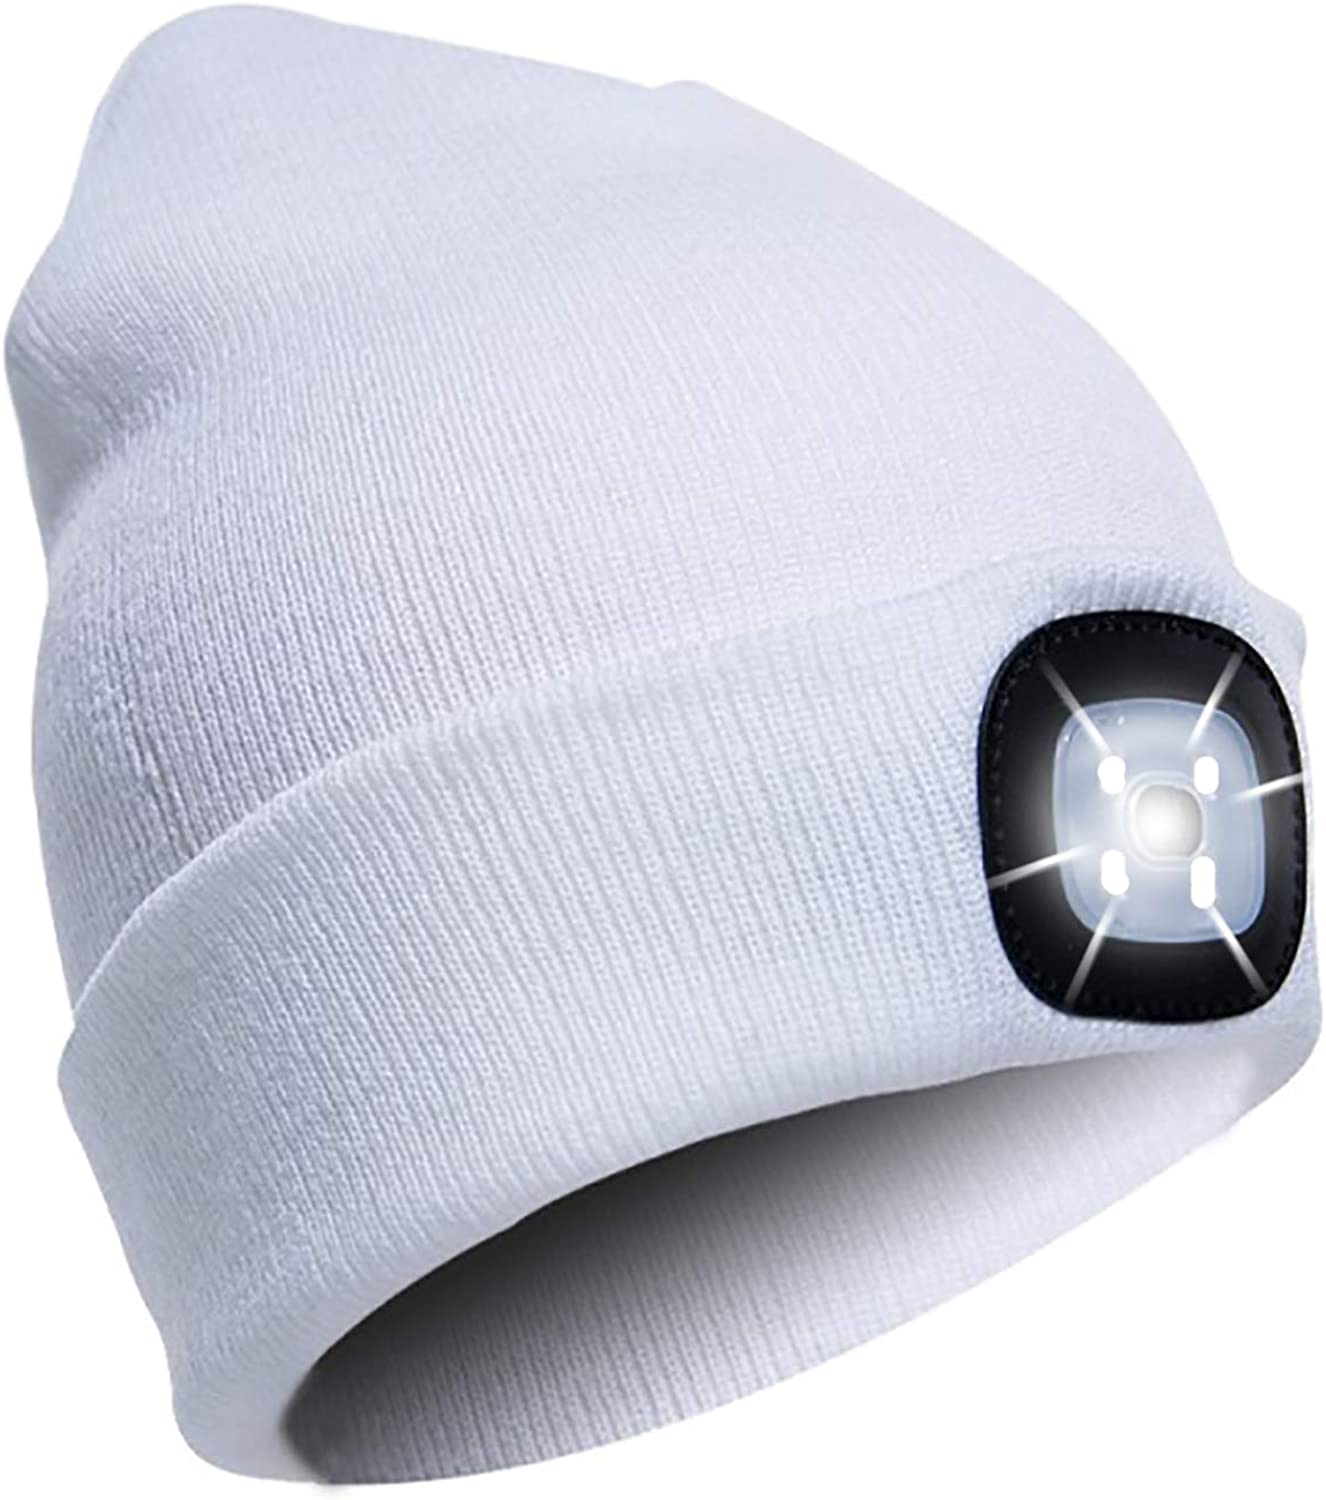 Unisex LED Lighted Beanie Cap USB Rechargeable Crocheted Hats Built in LED Light